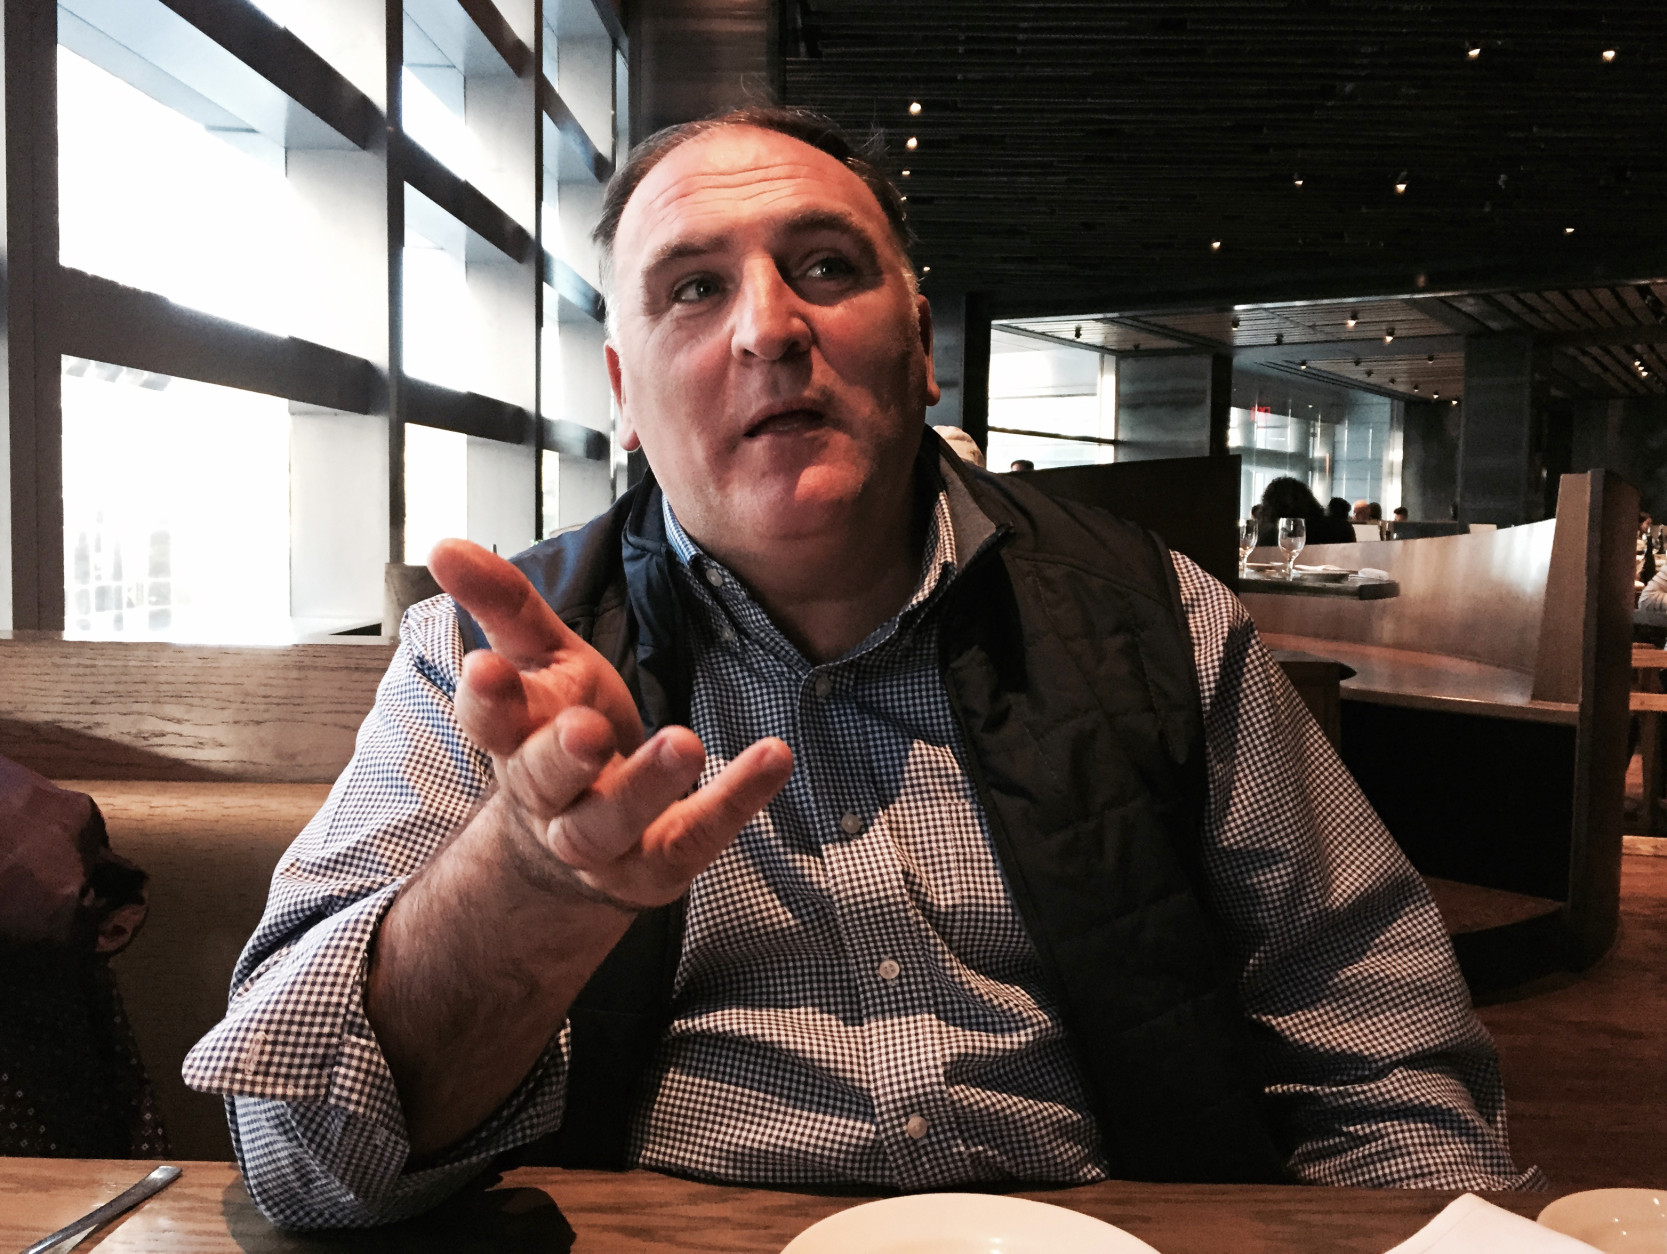 Chef Jose Andres is known for his Jaleo tapas restaurants in Washington D.C., Las Vegas and elsewhere. (AP Photo/Beth J. Harpaz)